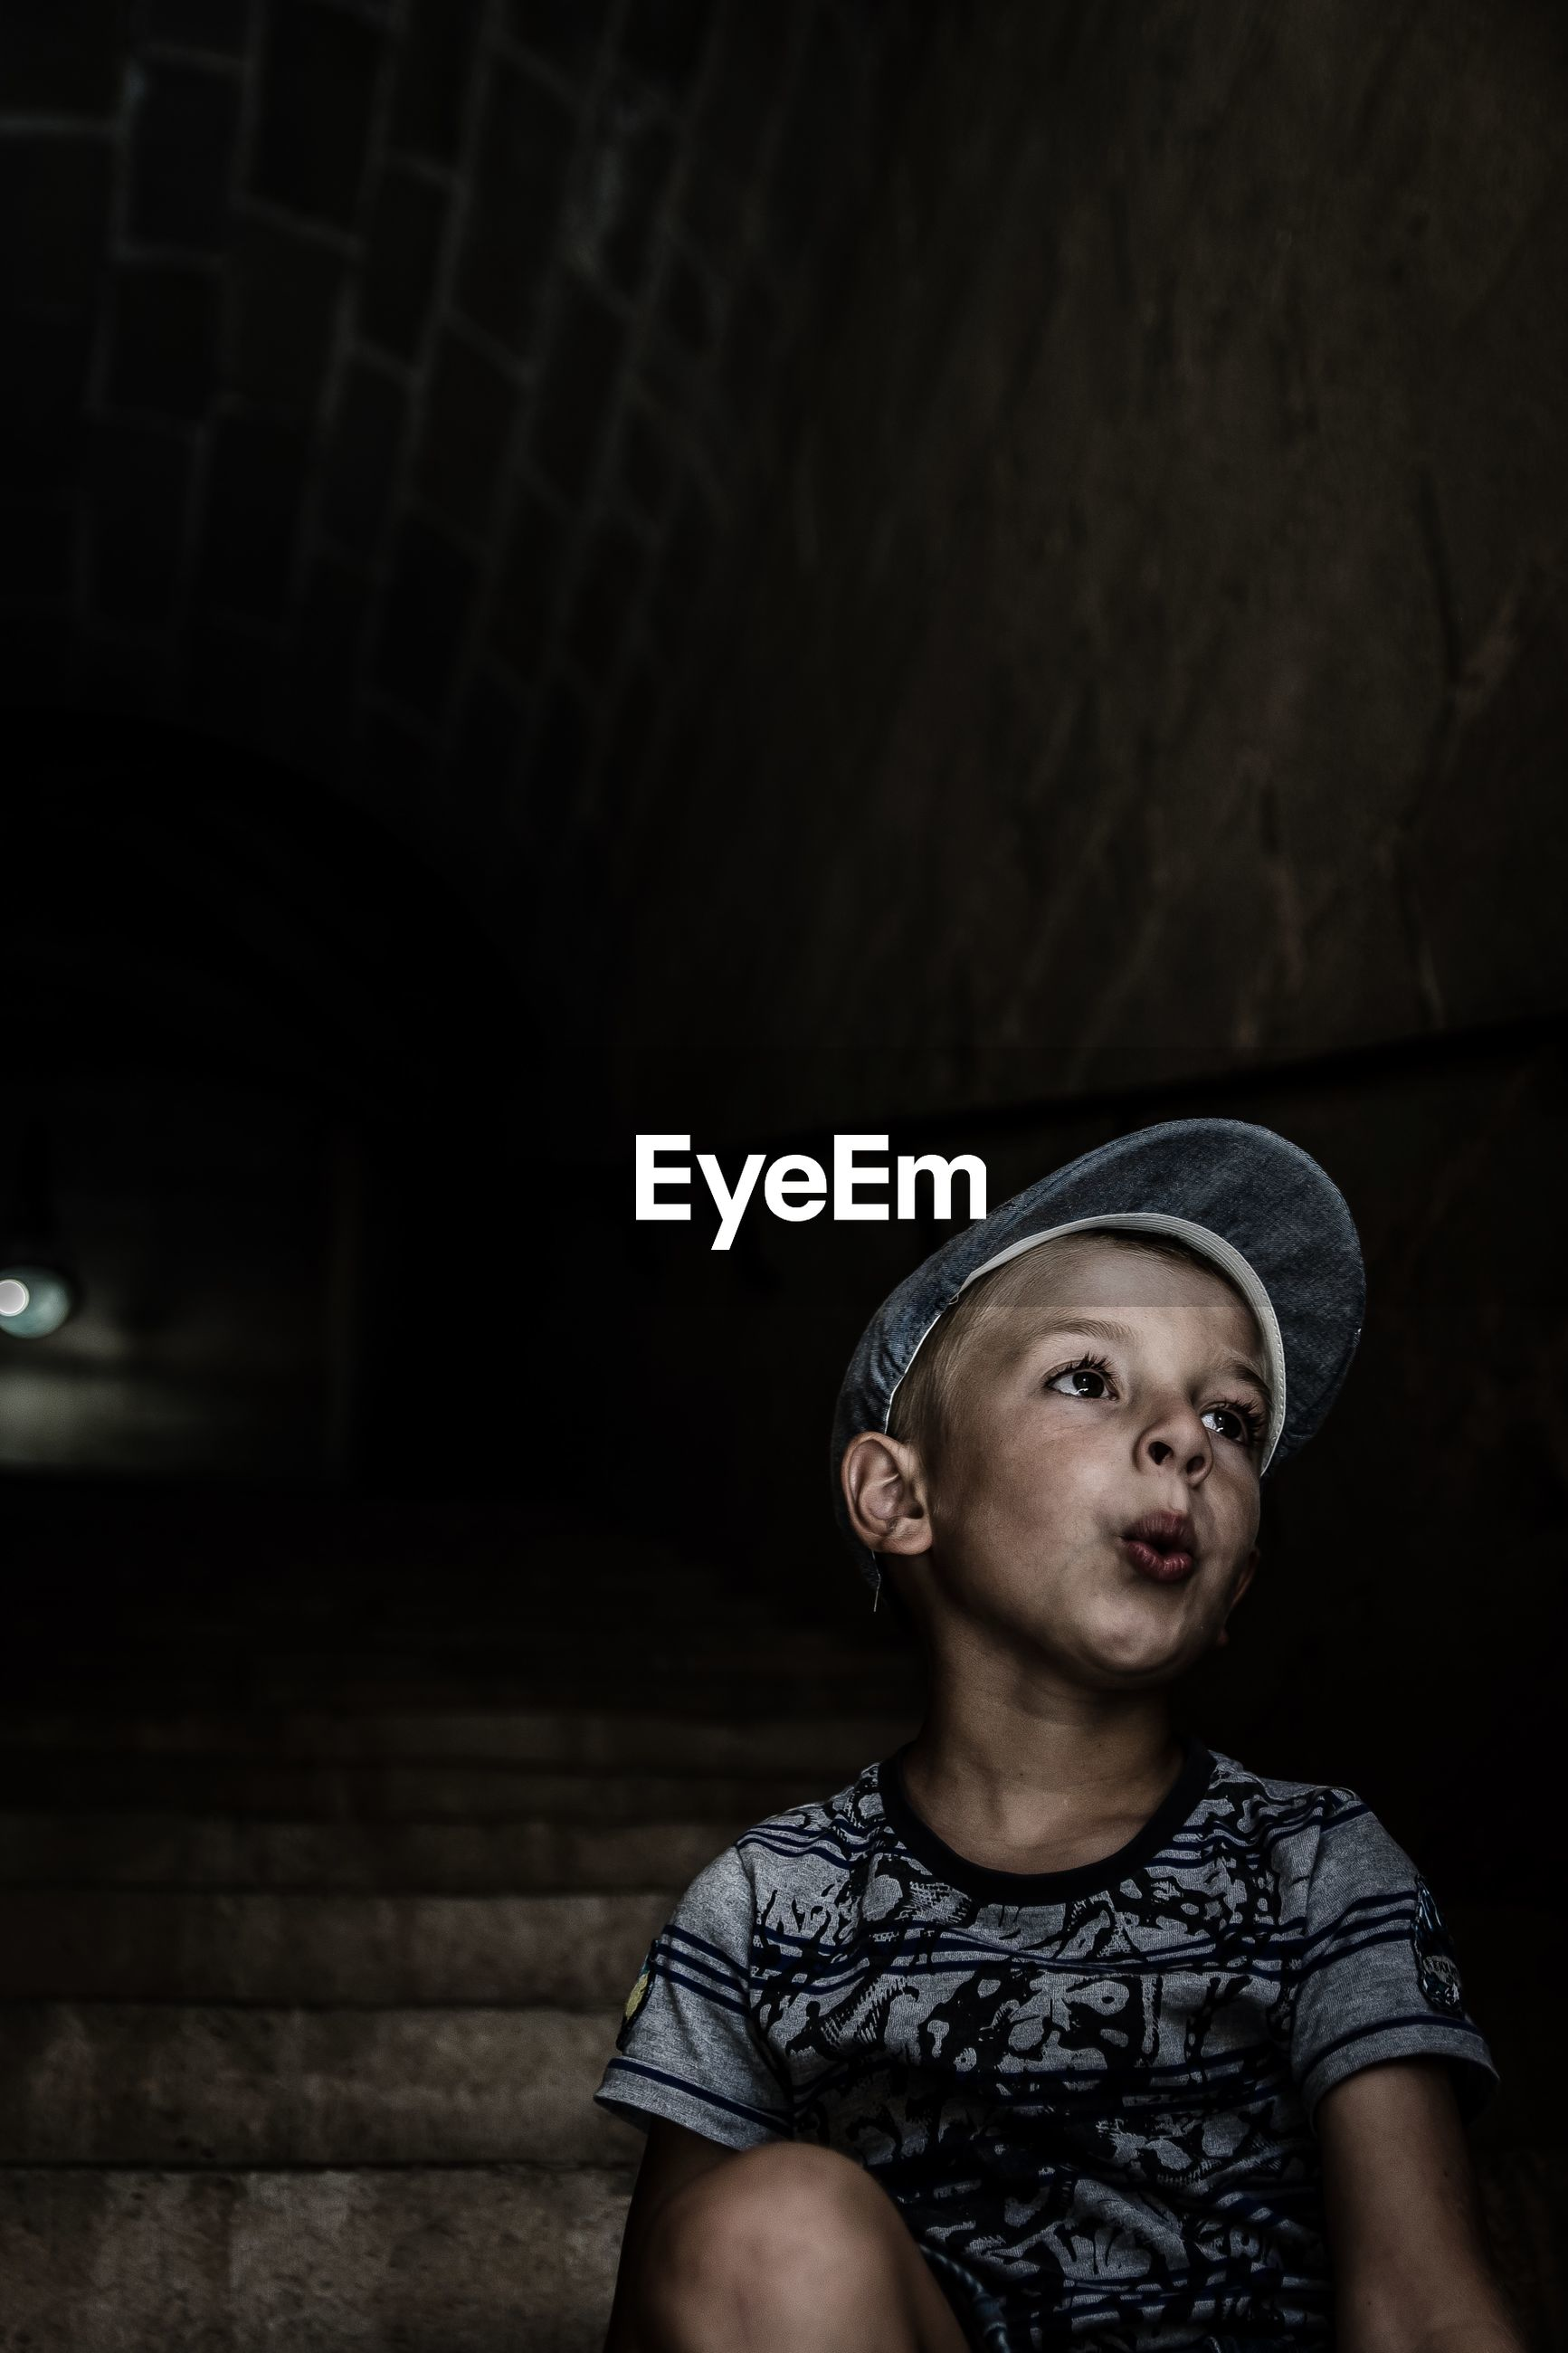 Thoughtful boy wearing cap while sitting on steps in tunnel